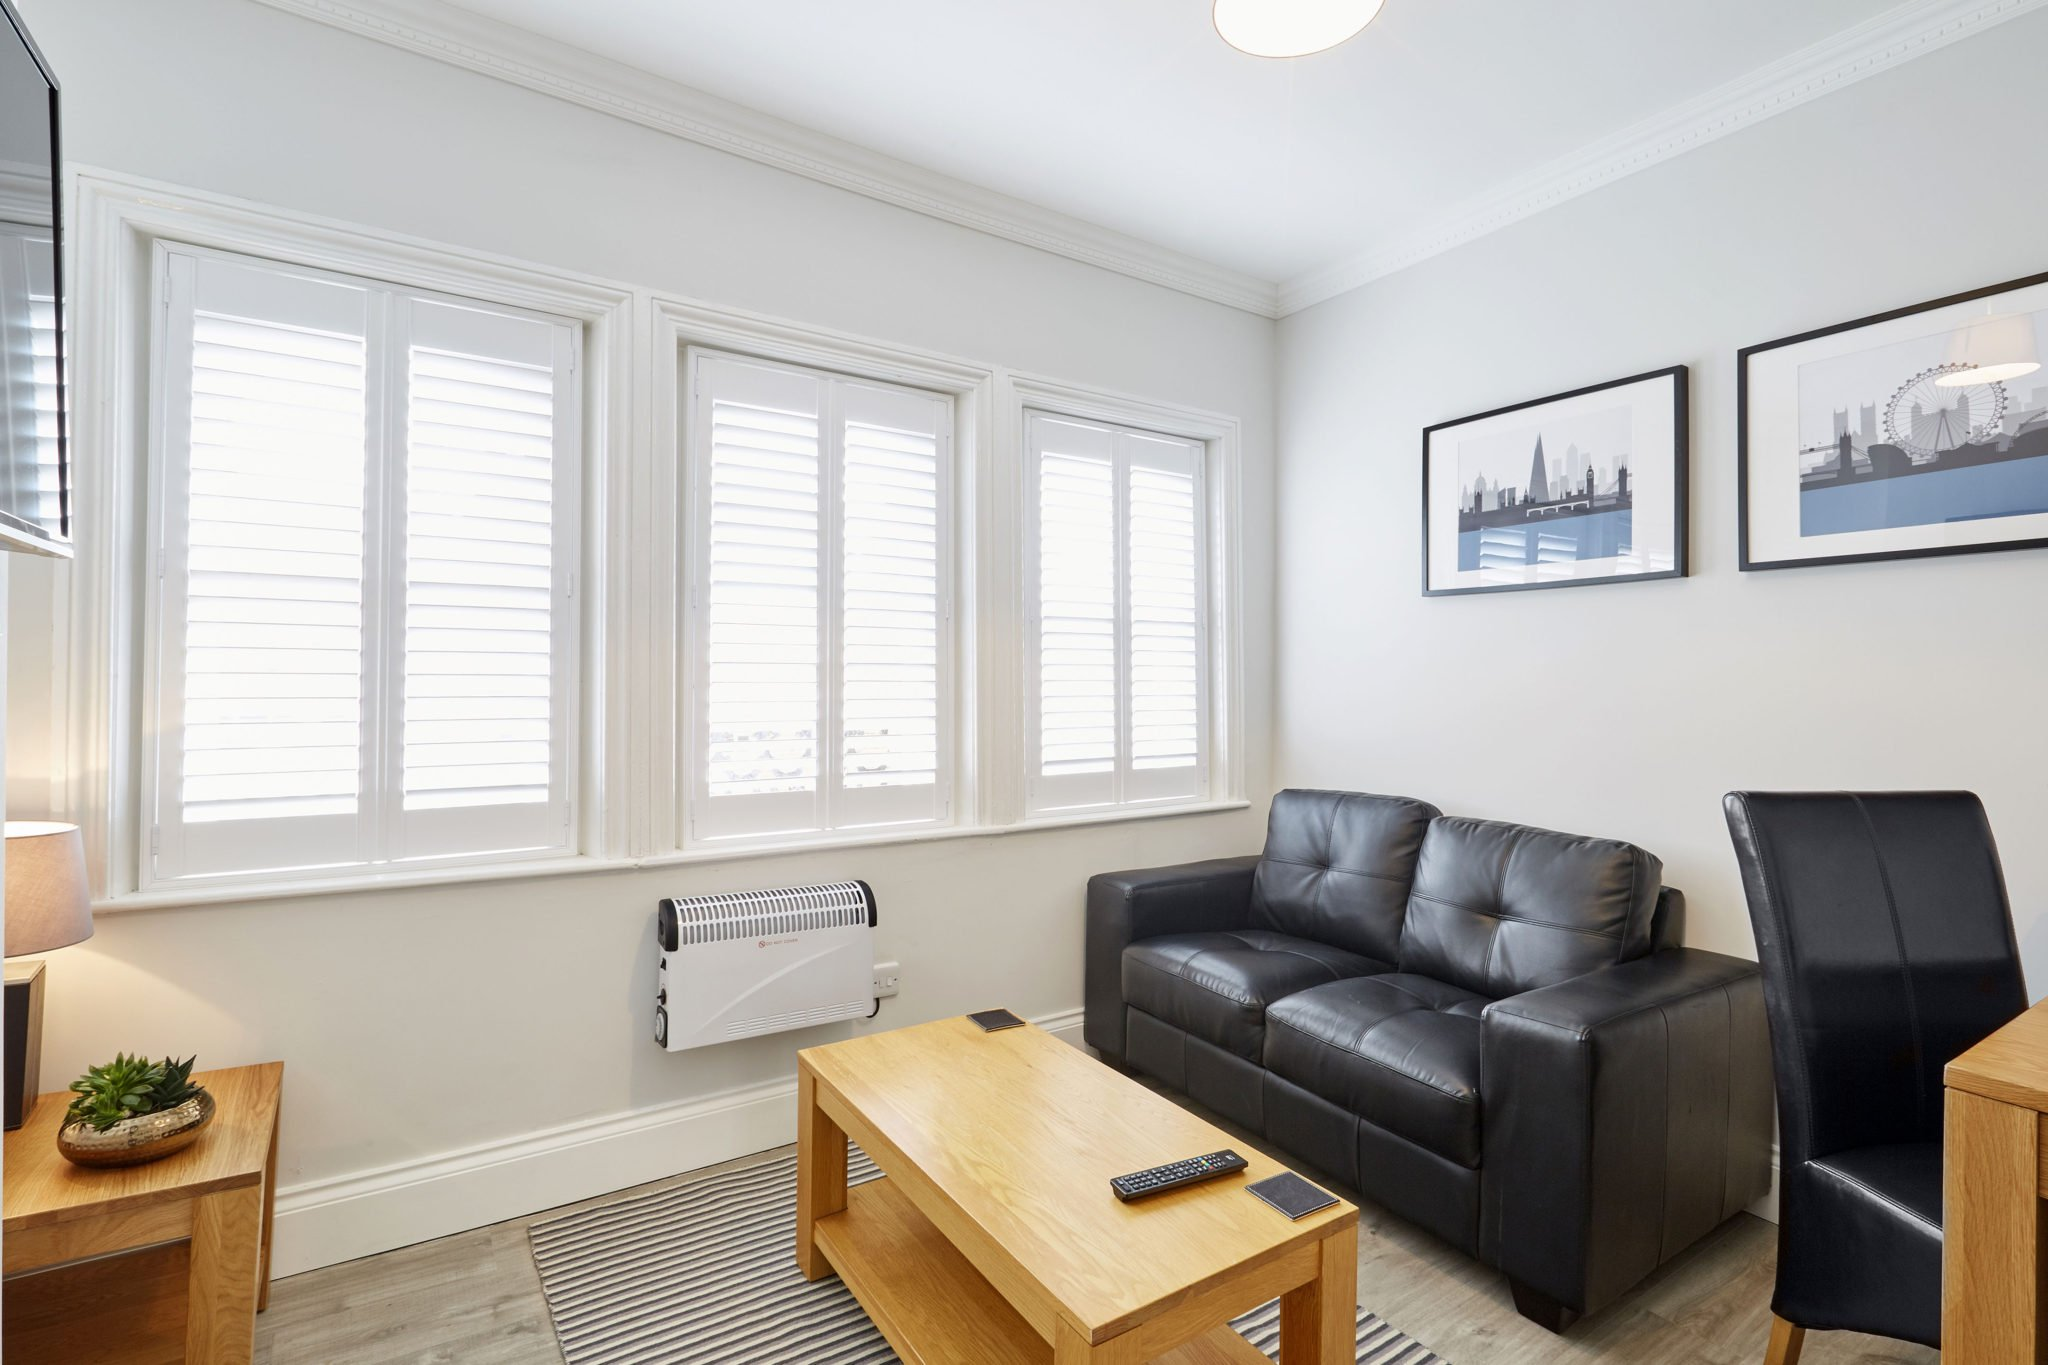 Windsor-Accommodation-| Serviced-Apartments-with-Windsor-Castle-View-|-Short-Let-Accommodation-|-Holiday-Accommodation-UK-|-NO-FEES---FREE-Wifi---BOOK-NOW-|-Urban-Stay